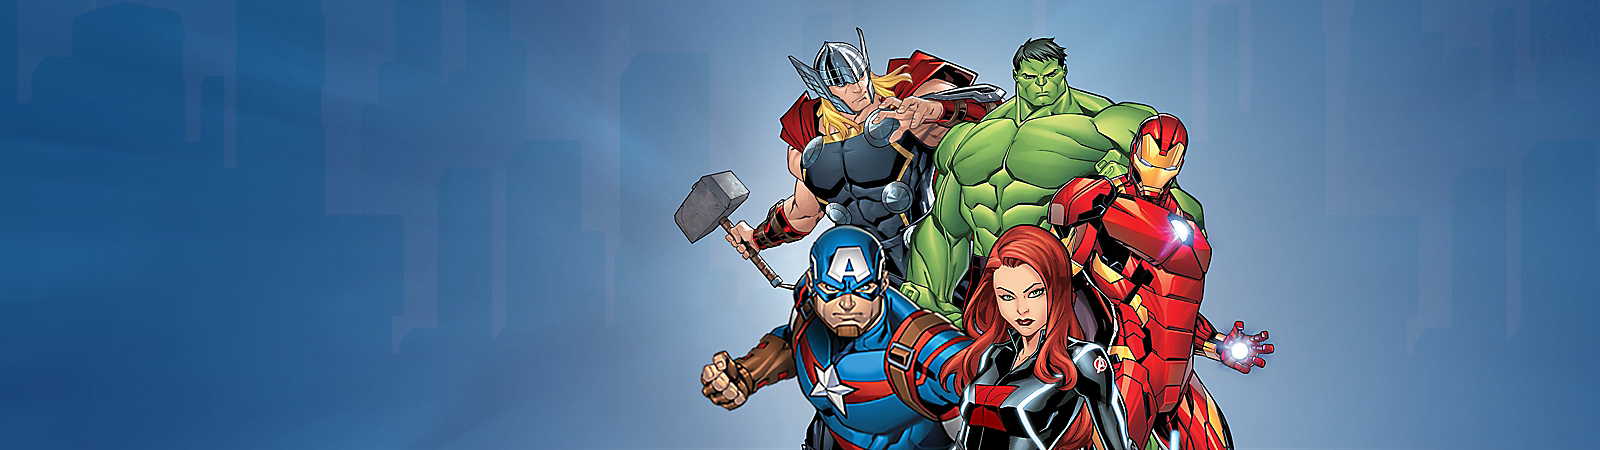 Background image of The Avengers